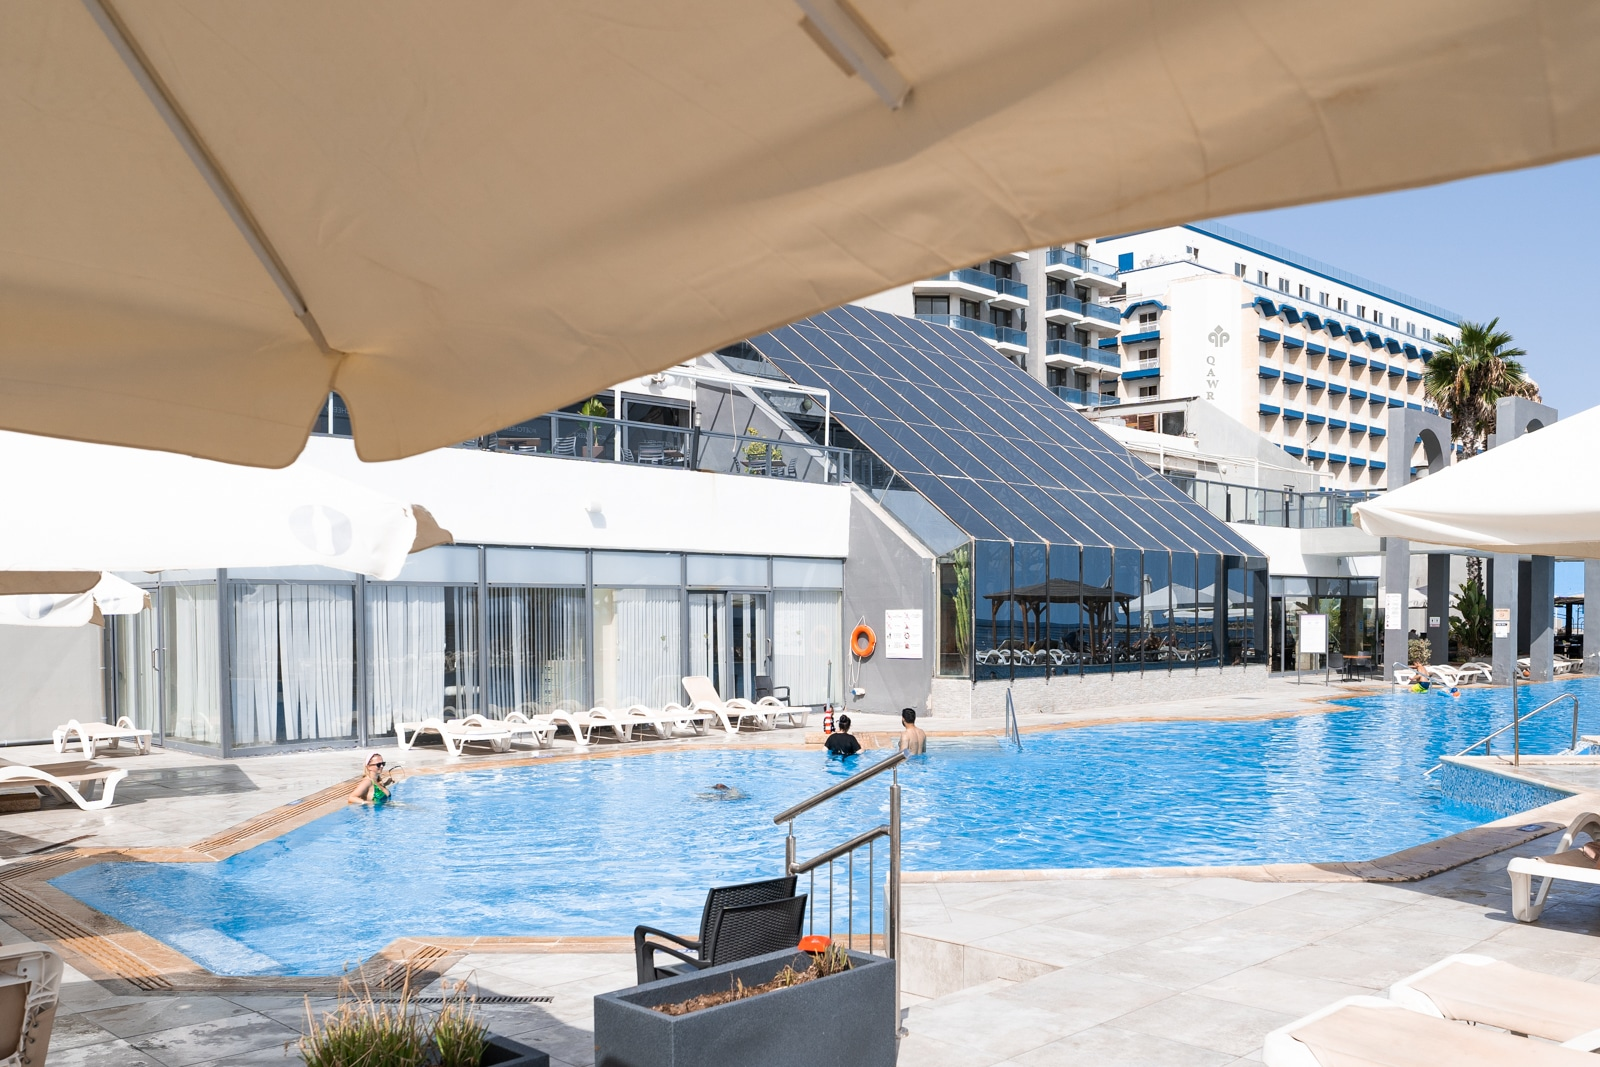 View from under umbrella of outdoor swimming pool